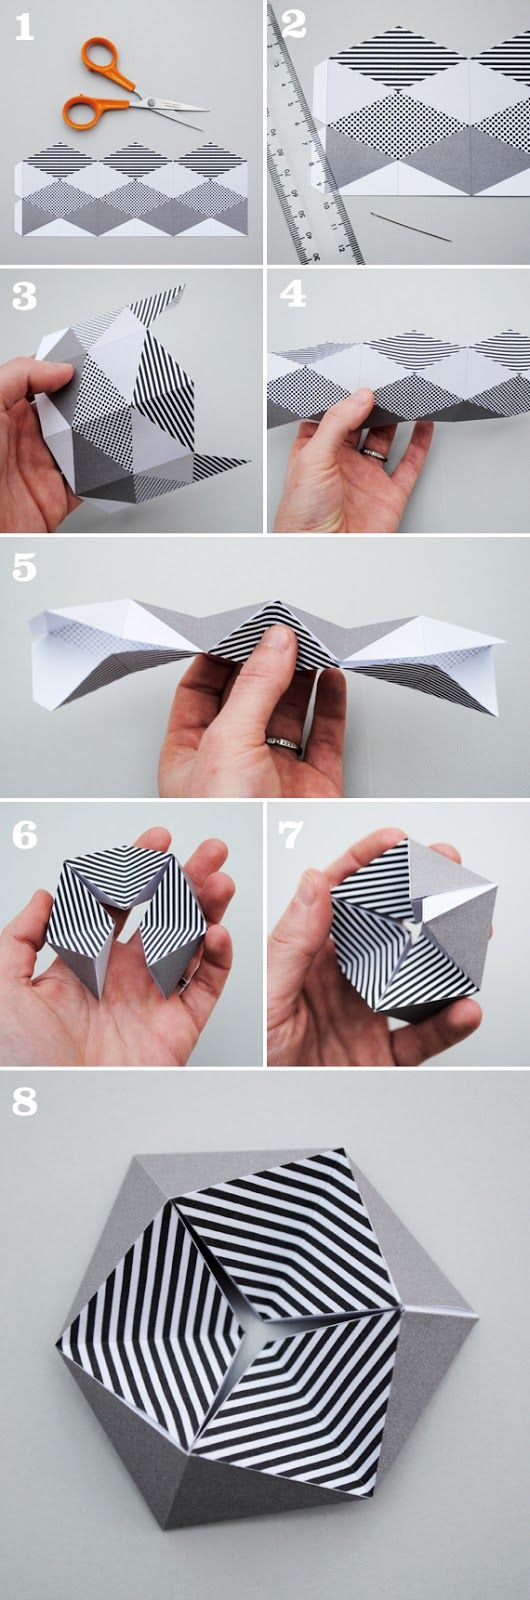 Kaleidocycle from Minieco on www.popupaper.blogspot.co.uk #popupbooks #papercraft #paperfolding #paper #paperart